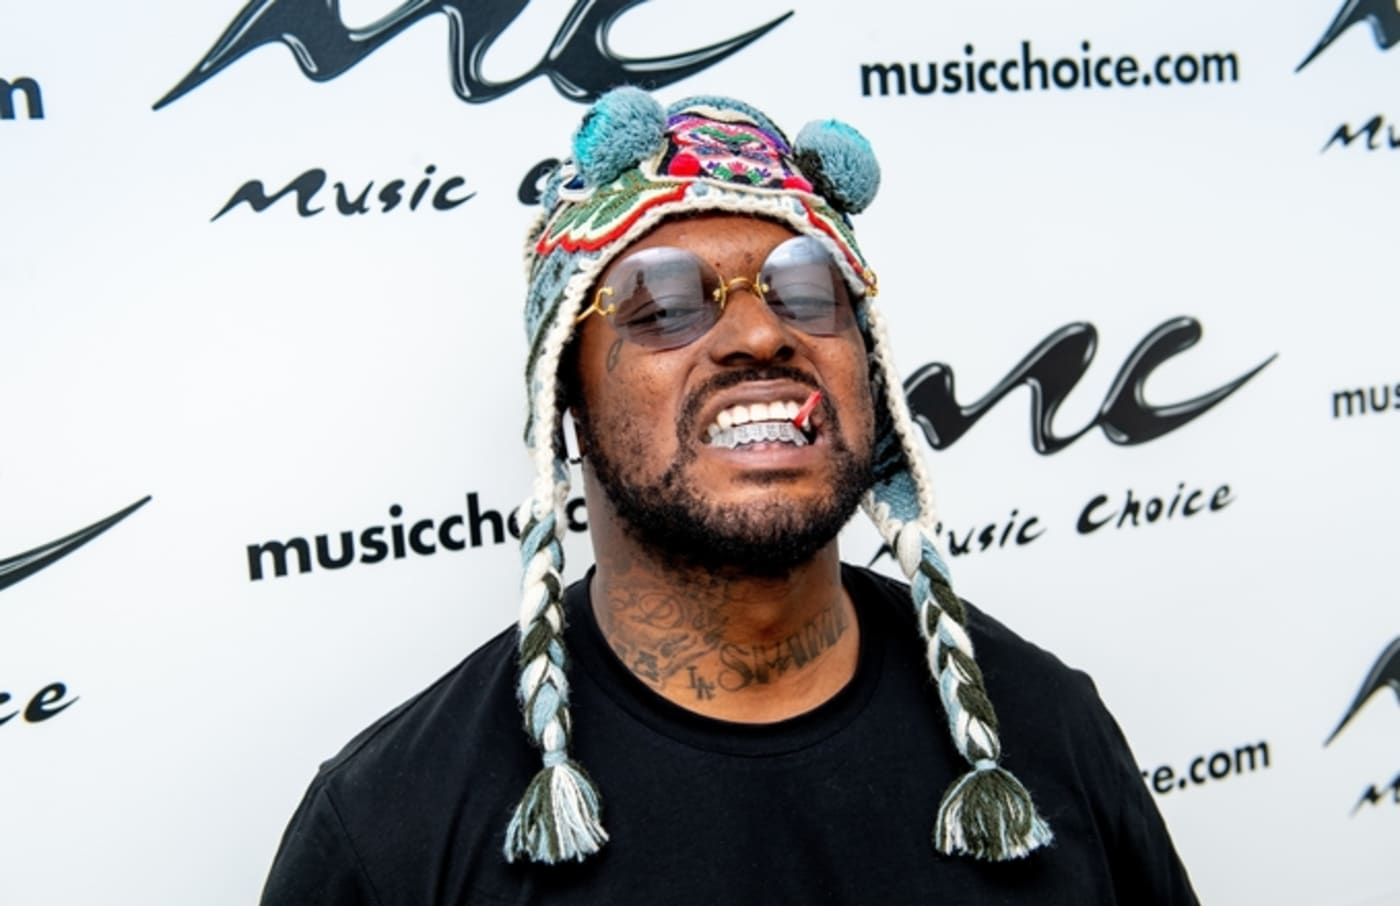 schoolboy q music choice grill